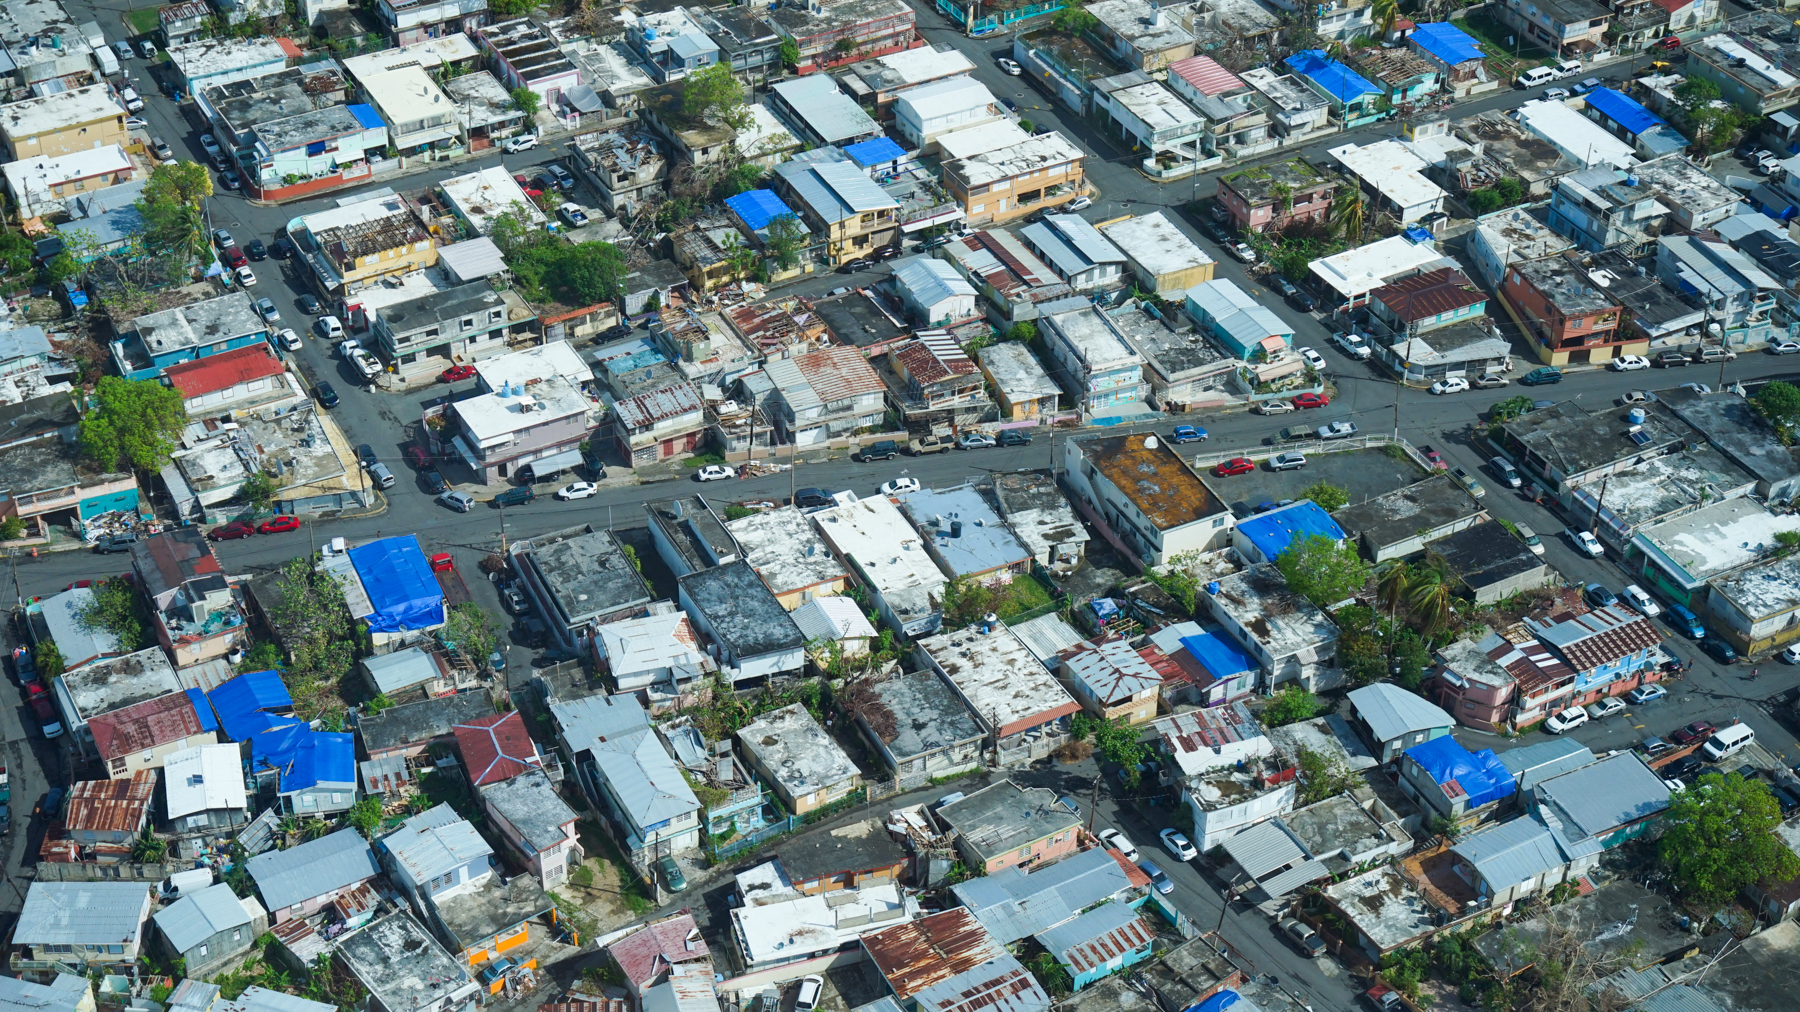 Homes with missing roofs after Hurricane Maria in 2017. With new mapping technology, humanitarian organizations are able to determine who is most vulnerable in an emergency and where to direct aid. (Lara Cooper/Direct Relief)